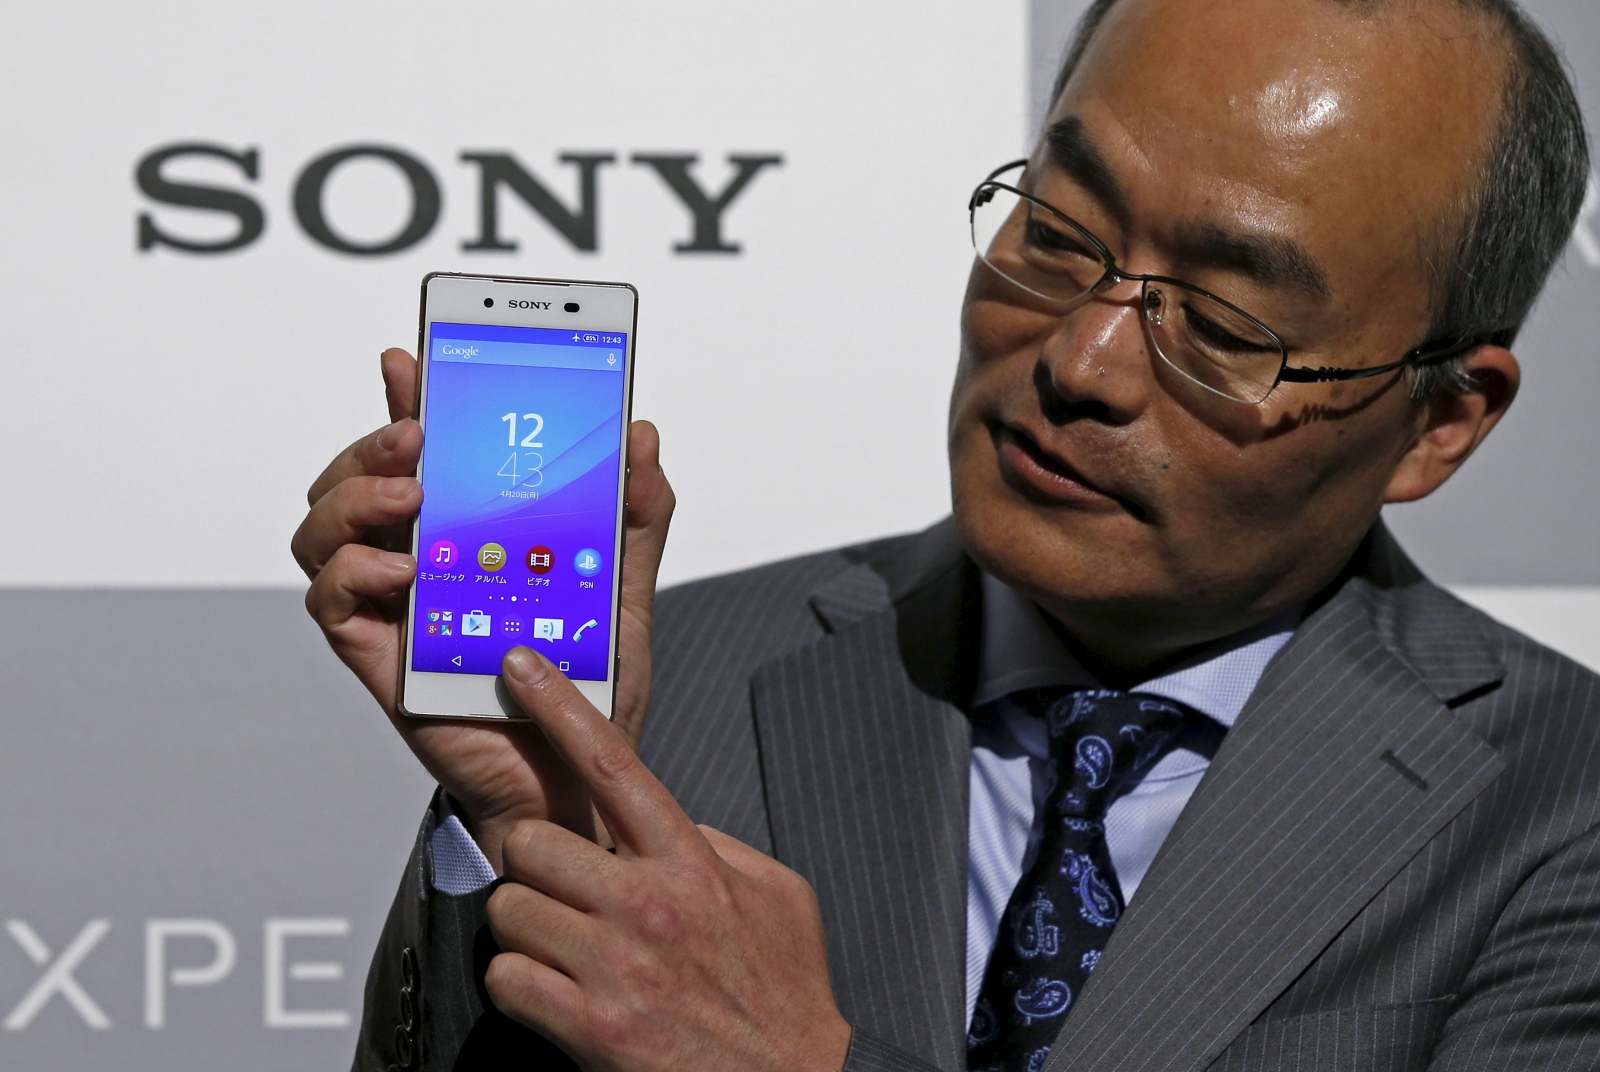 Sony Xperia T4 Ultra rumoured to belaunchedsoon